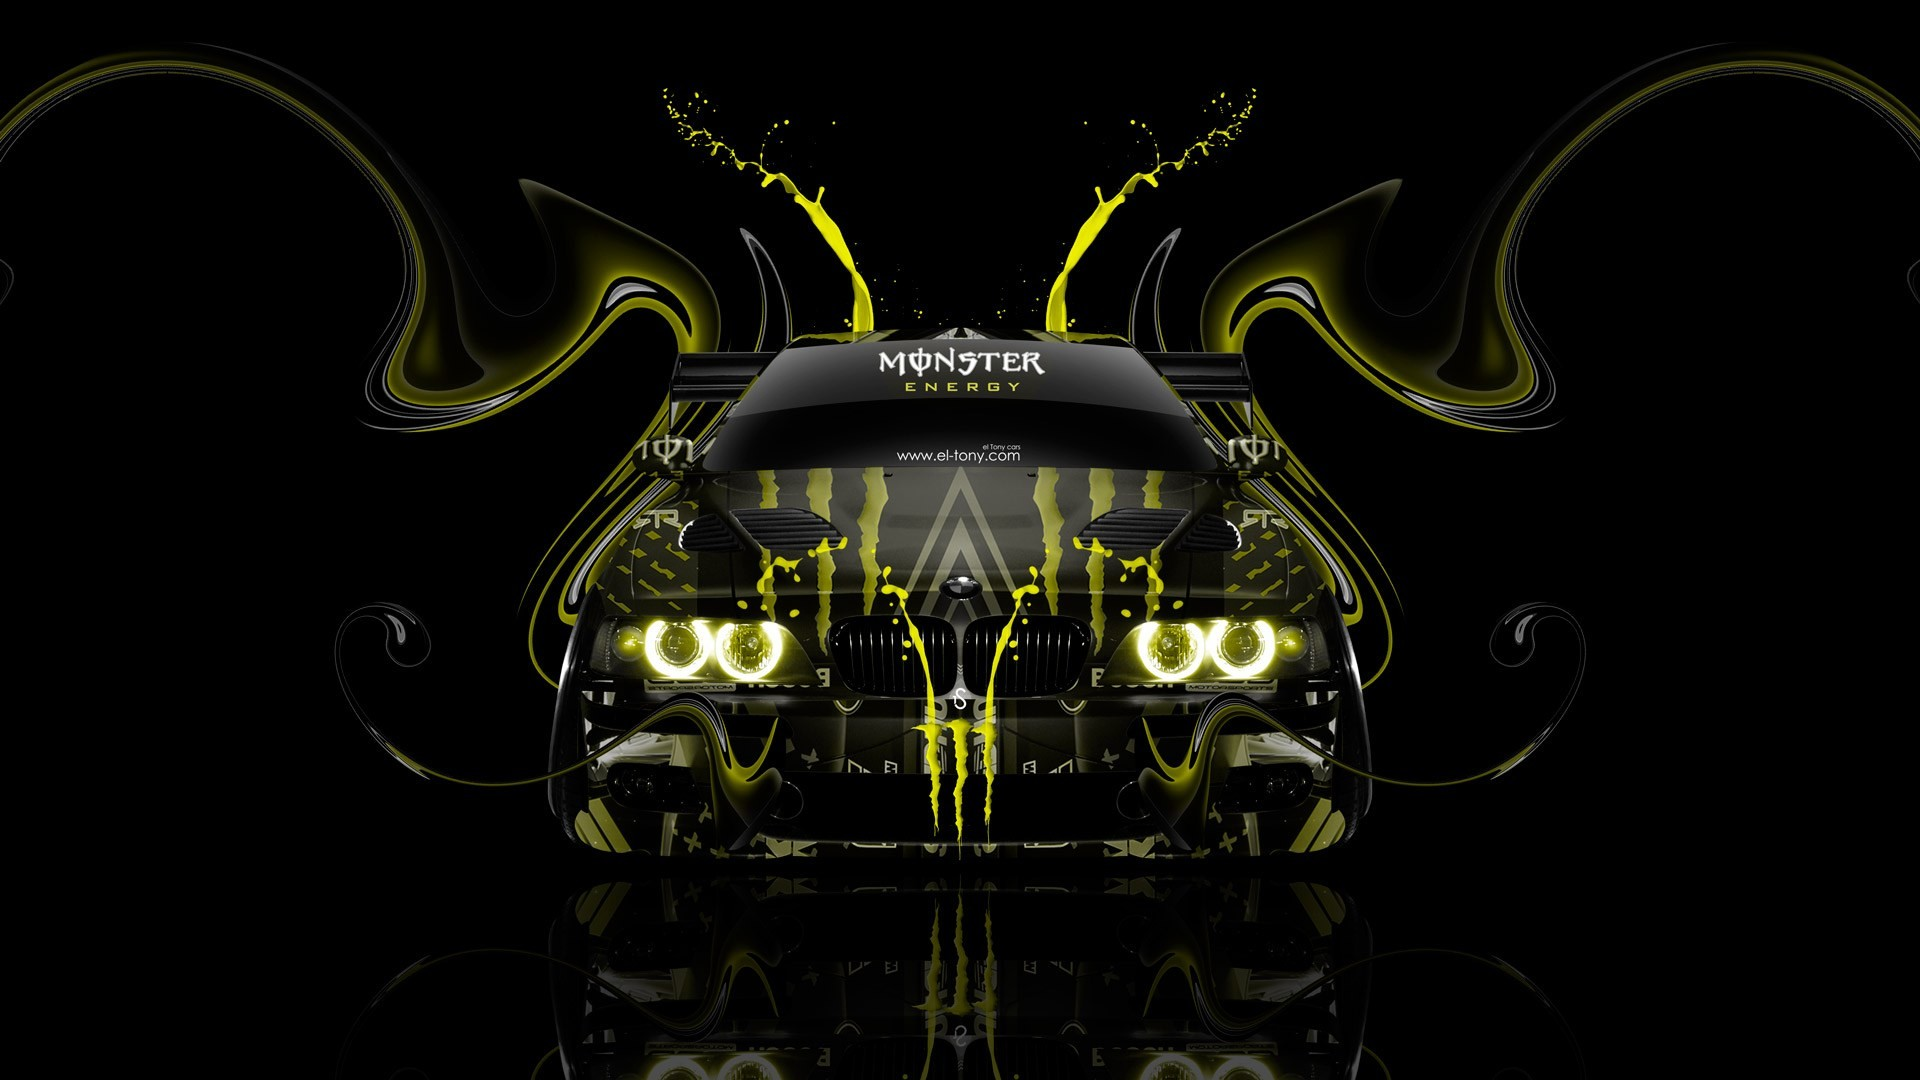 1920x1080 ... Rockstar Energy Wallpaper For Iphone Rockstar Energy Wallpaper 72 Images